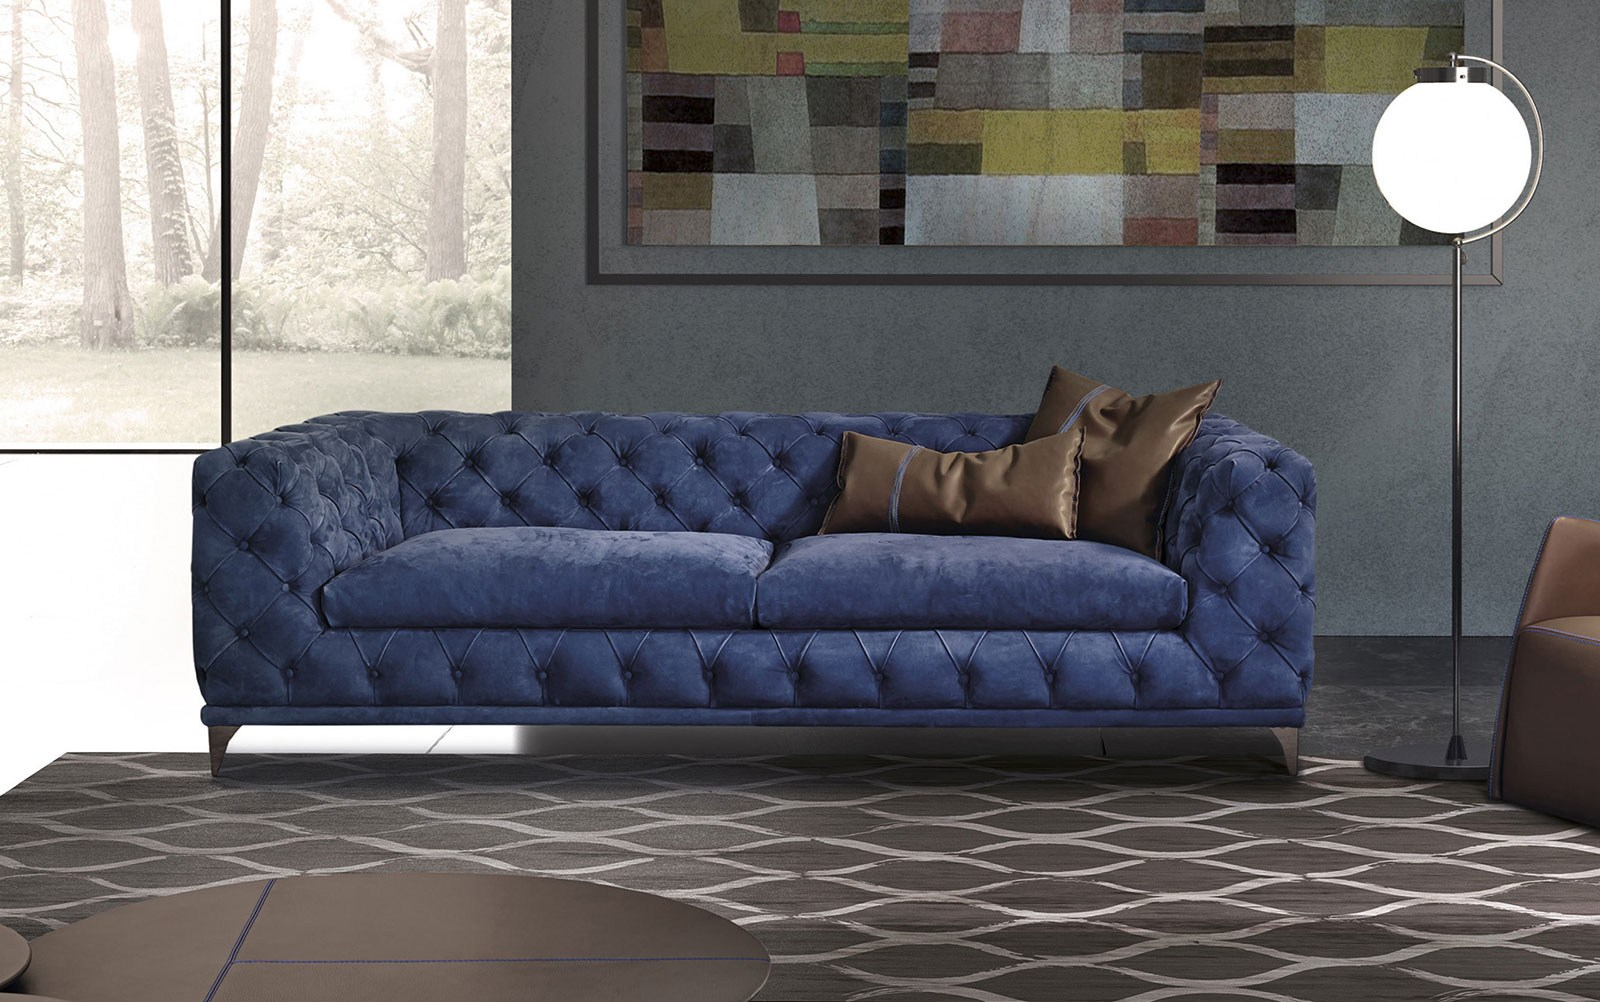 ASTON Divano capitonn233 by ITALY DREAM DESIGN Kallist233 : ASTON Tufted sofa ITALY DREAM DESIGN Kallist 273146 relfc41cffb from www.archiproducts.com size 1600 x 1002 jpeg 322kB